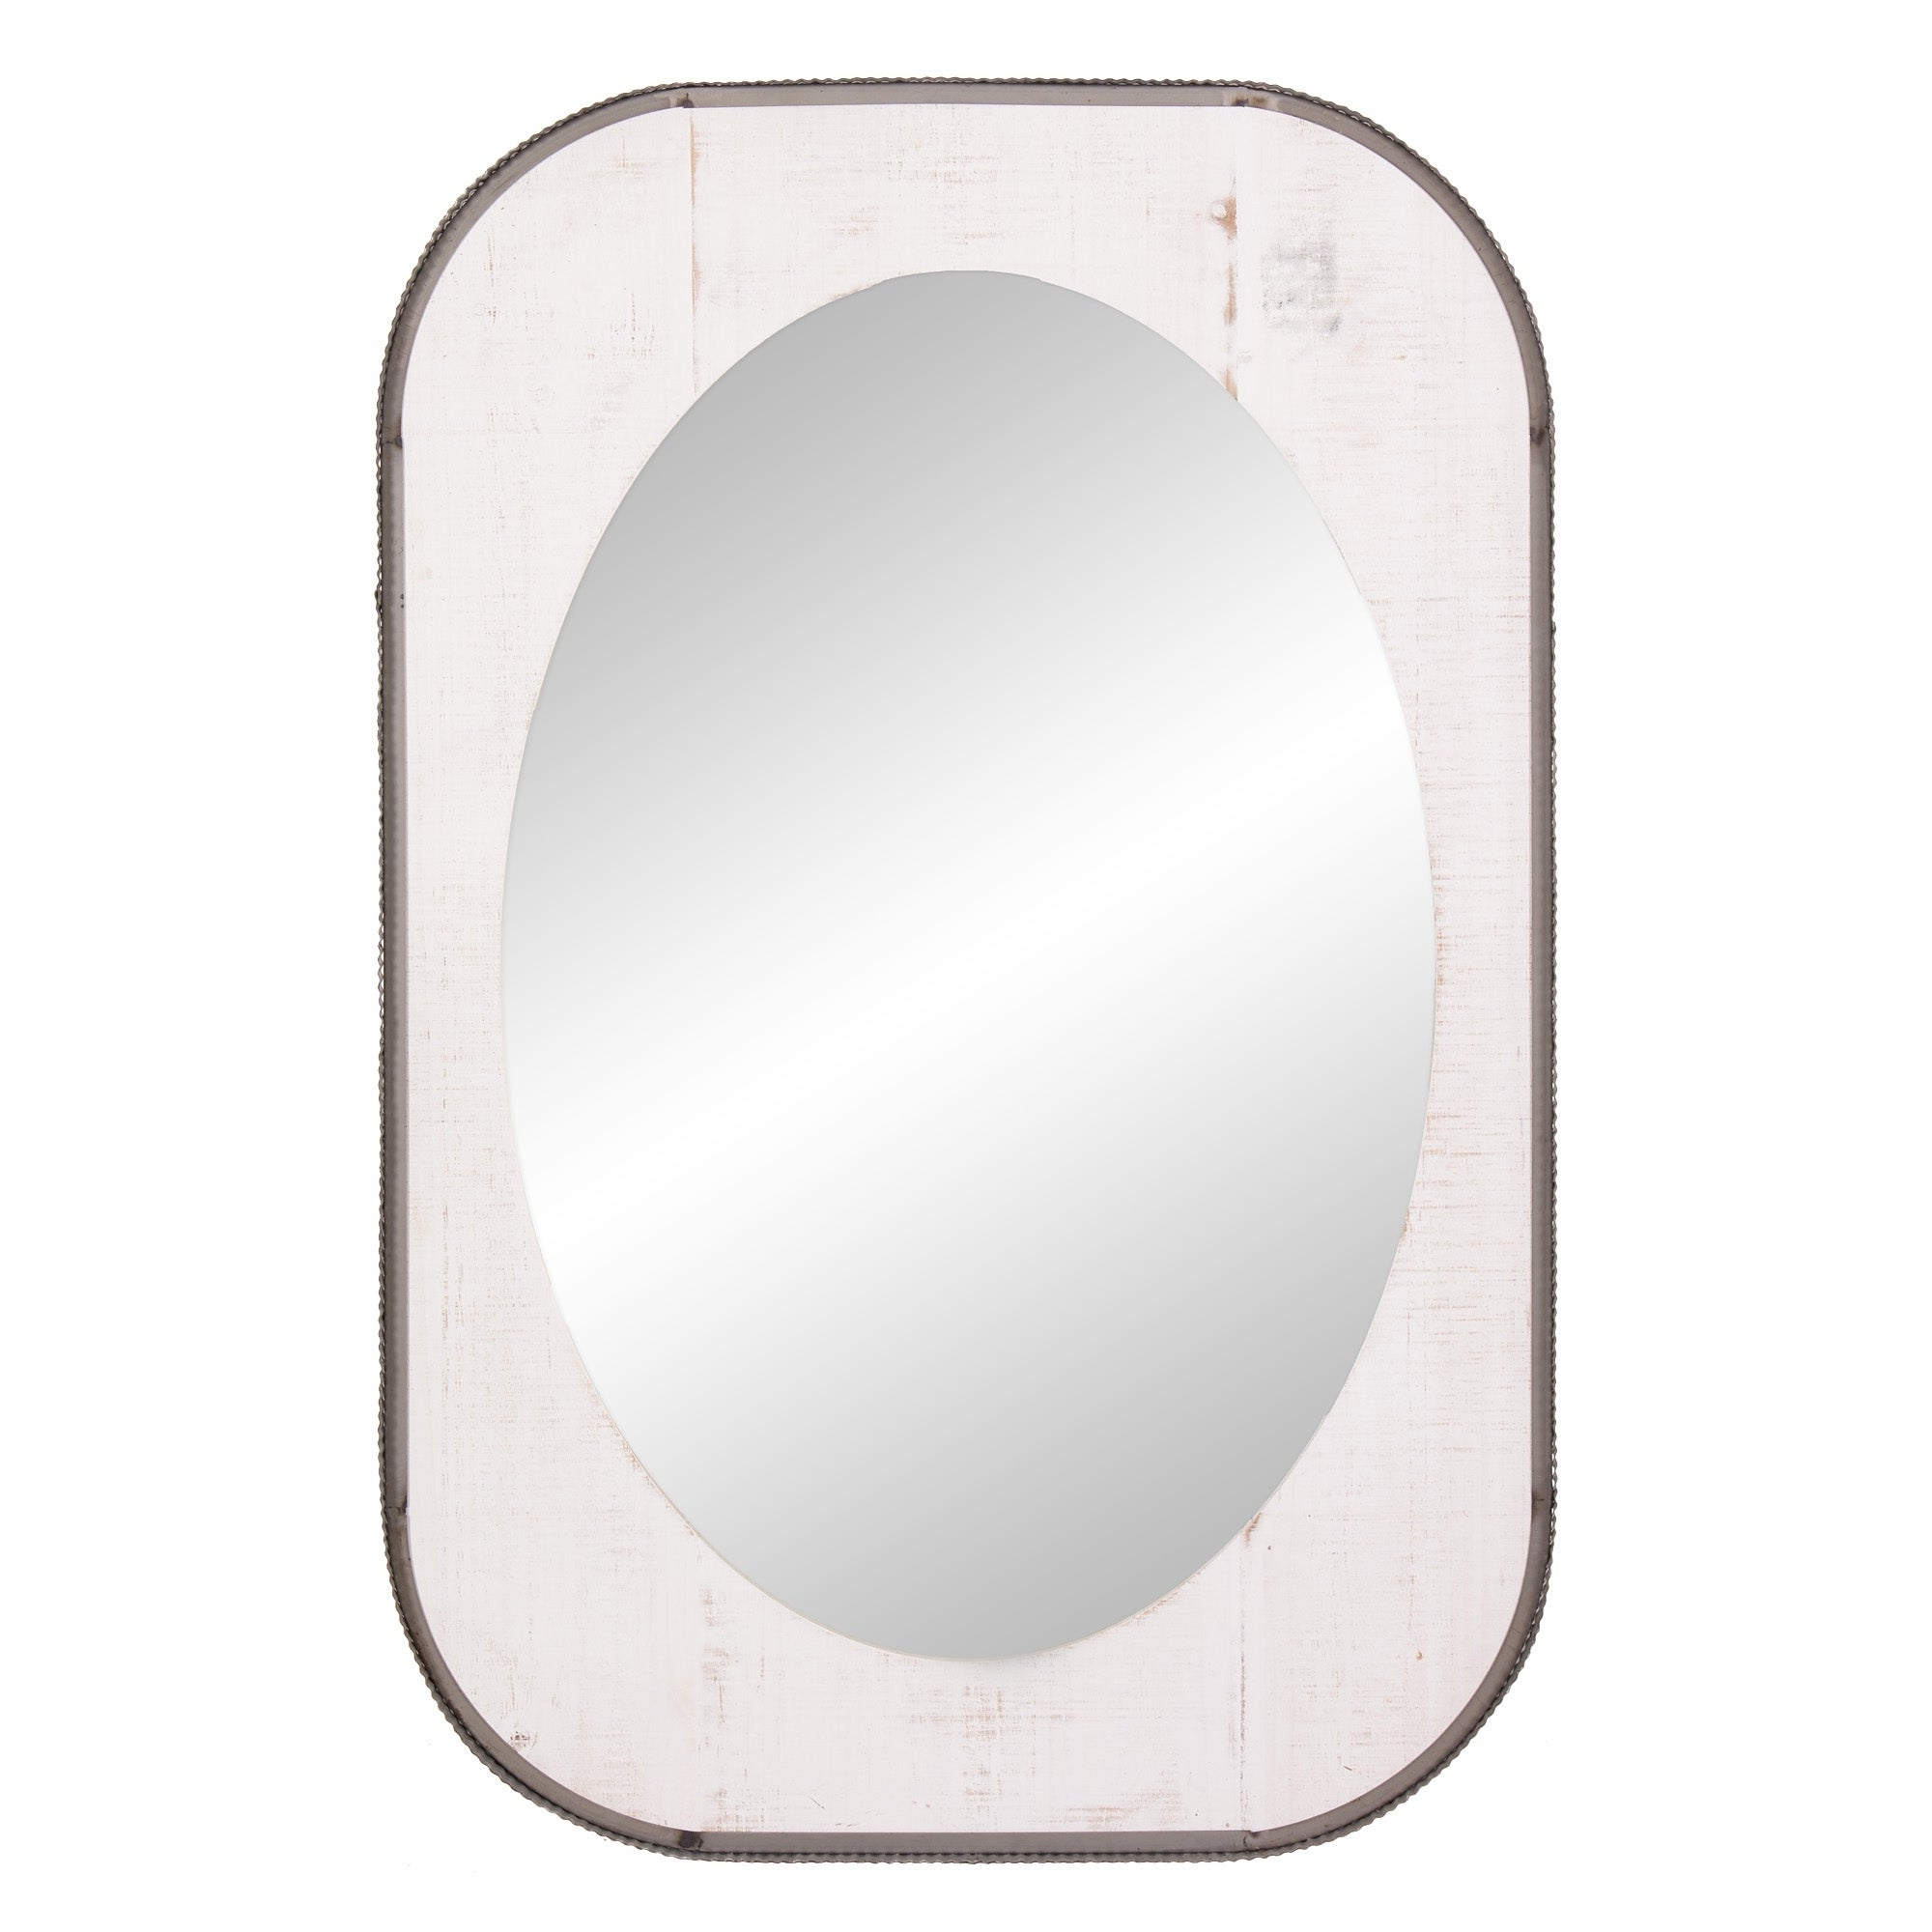 2019 Patton Wall Decor 24x36 Oval Wood And Metal Wall Accent Mirror Inside Oval Metallic Accent Mirrors (View 19 of 20)